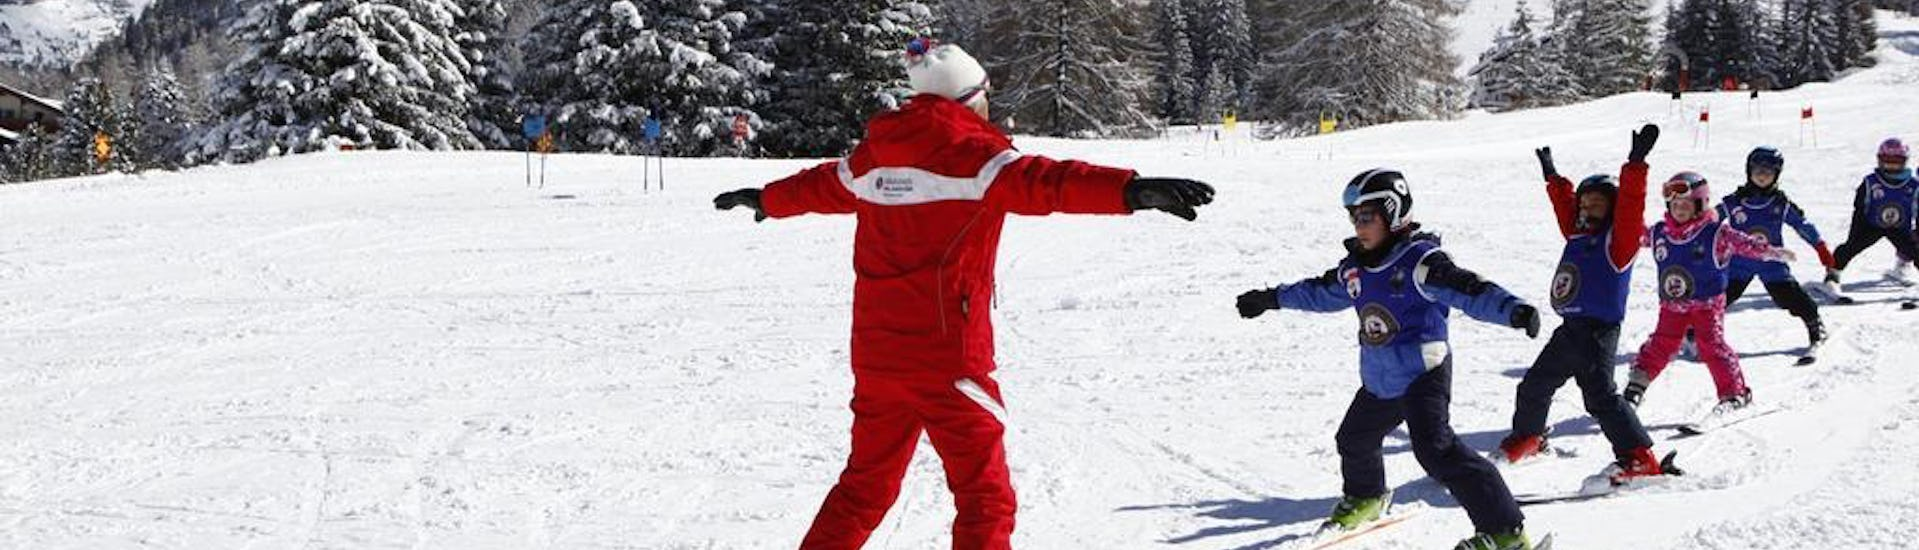 Ski Lessons Half-Day for Kids (4-12 years) - Advanced